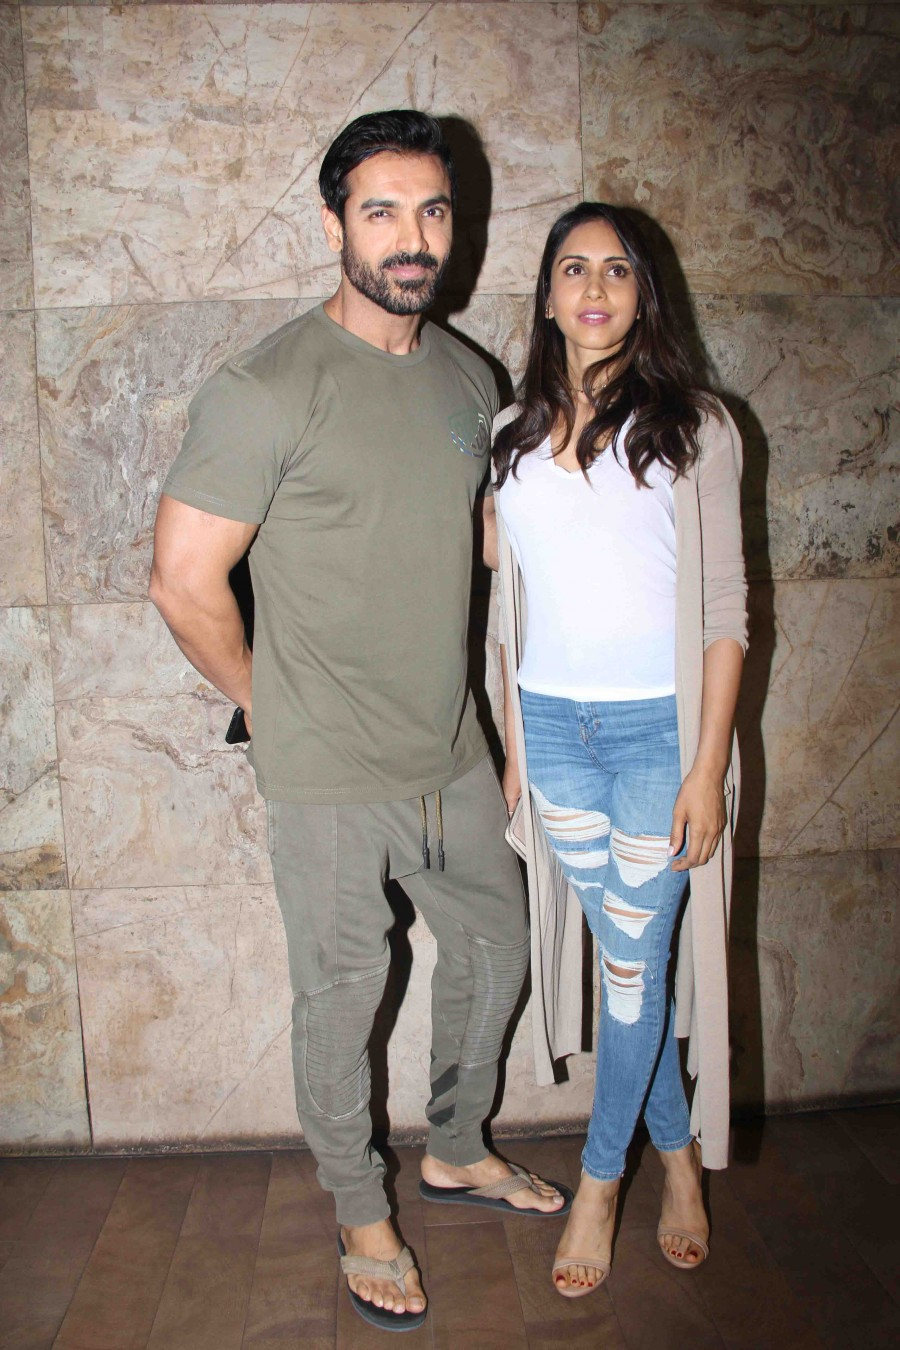 John Abraham,Sonakshi Sinha,Varun Dhawan,Force 2 Special Screening,Force 2,Force 2 Special Screening pics,Force 2 Special Screening images,Force 2 Special Screening photos,Force 2 Special Screening stills,Force 2 Special Screening pictures